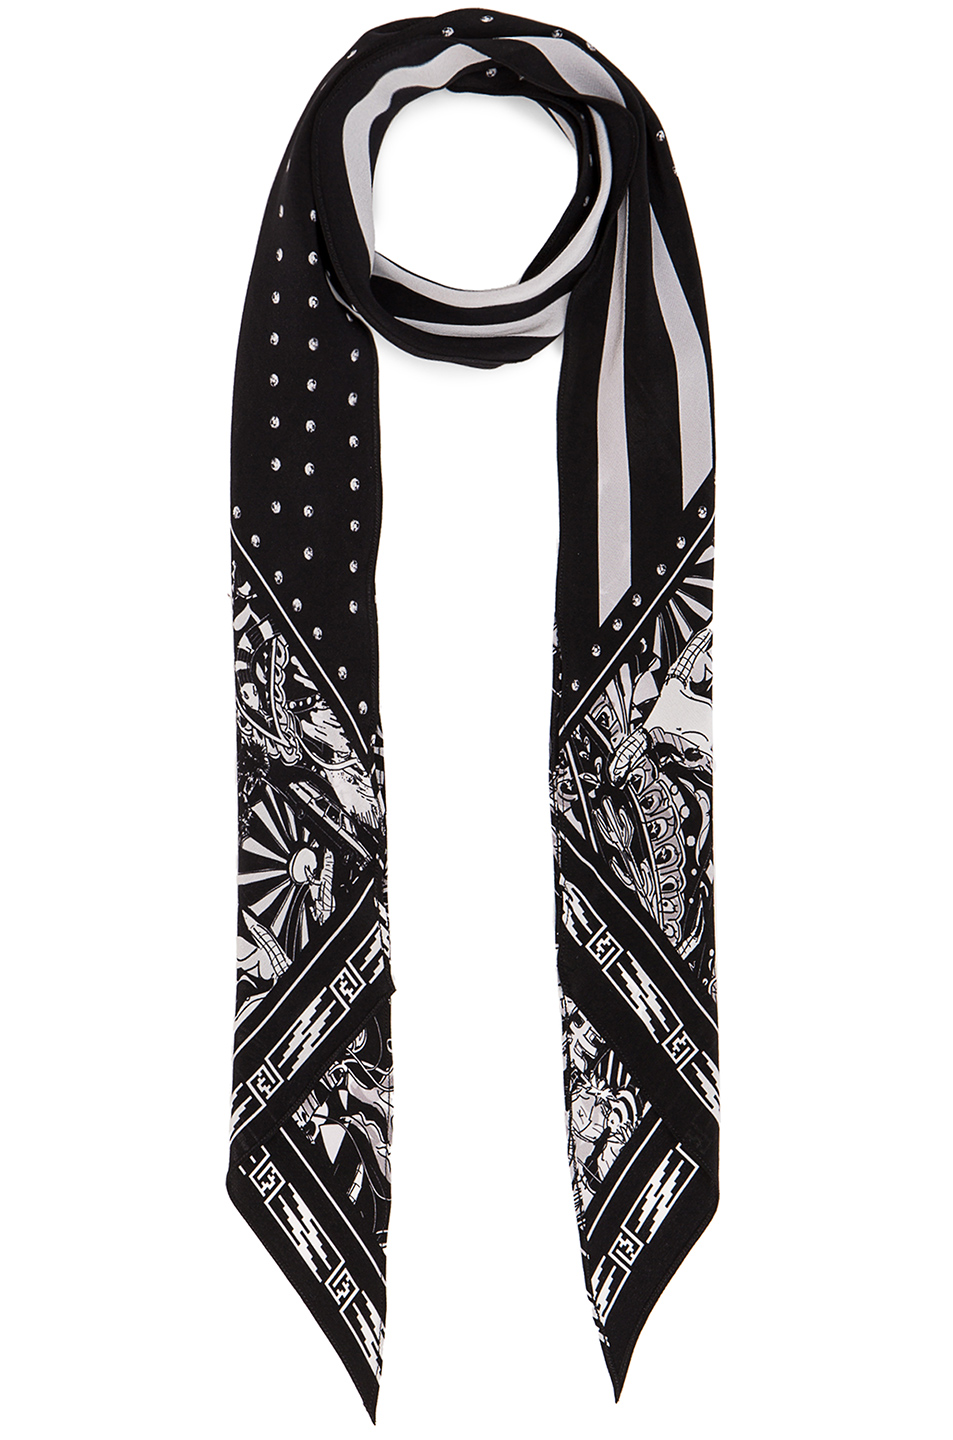 Rockins for FWRD Desert Paisley Classic Skinny Scarf in Black